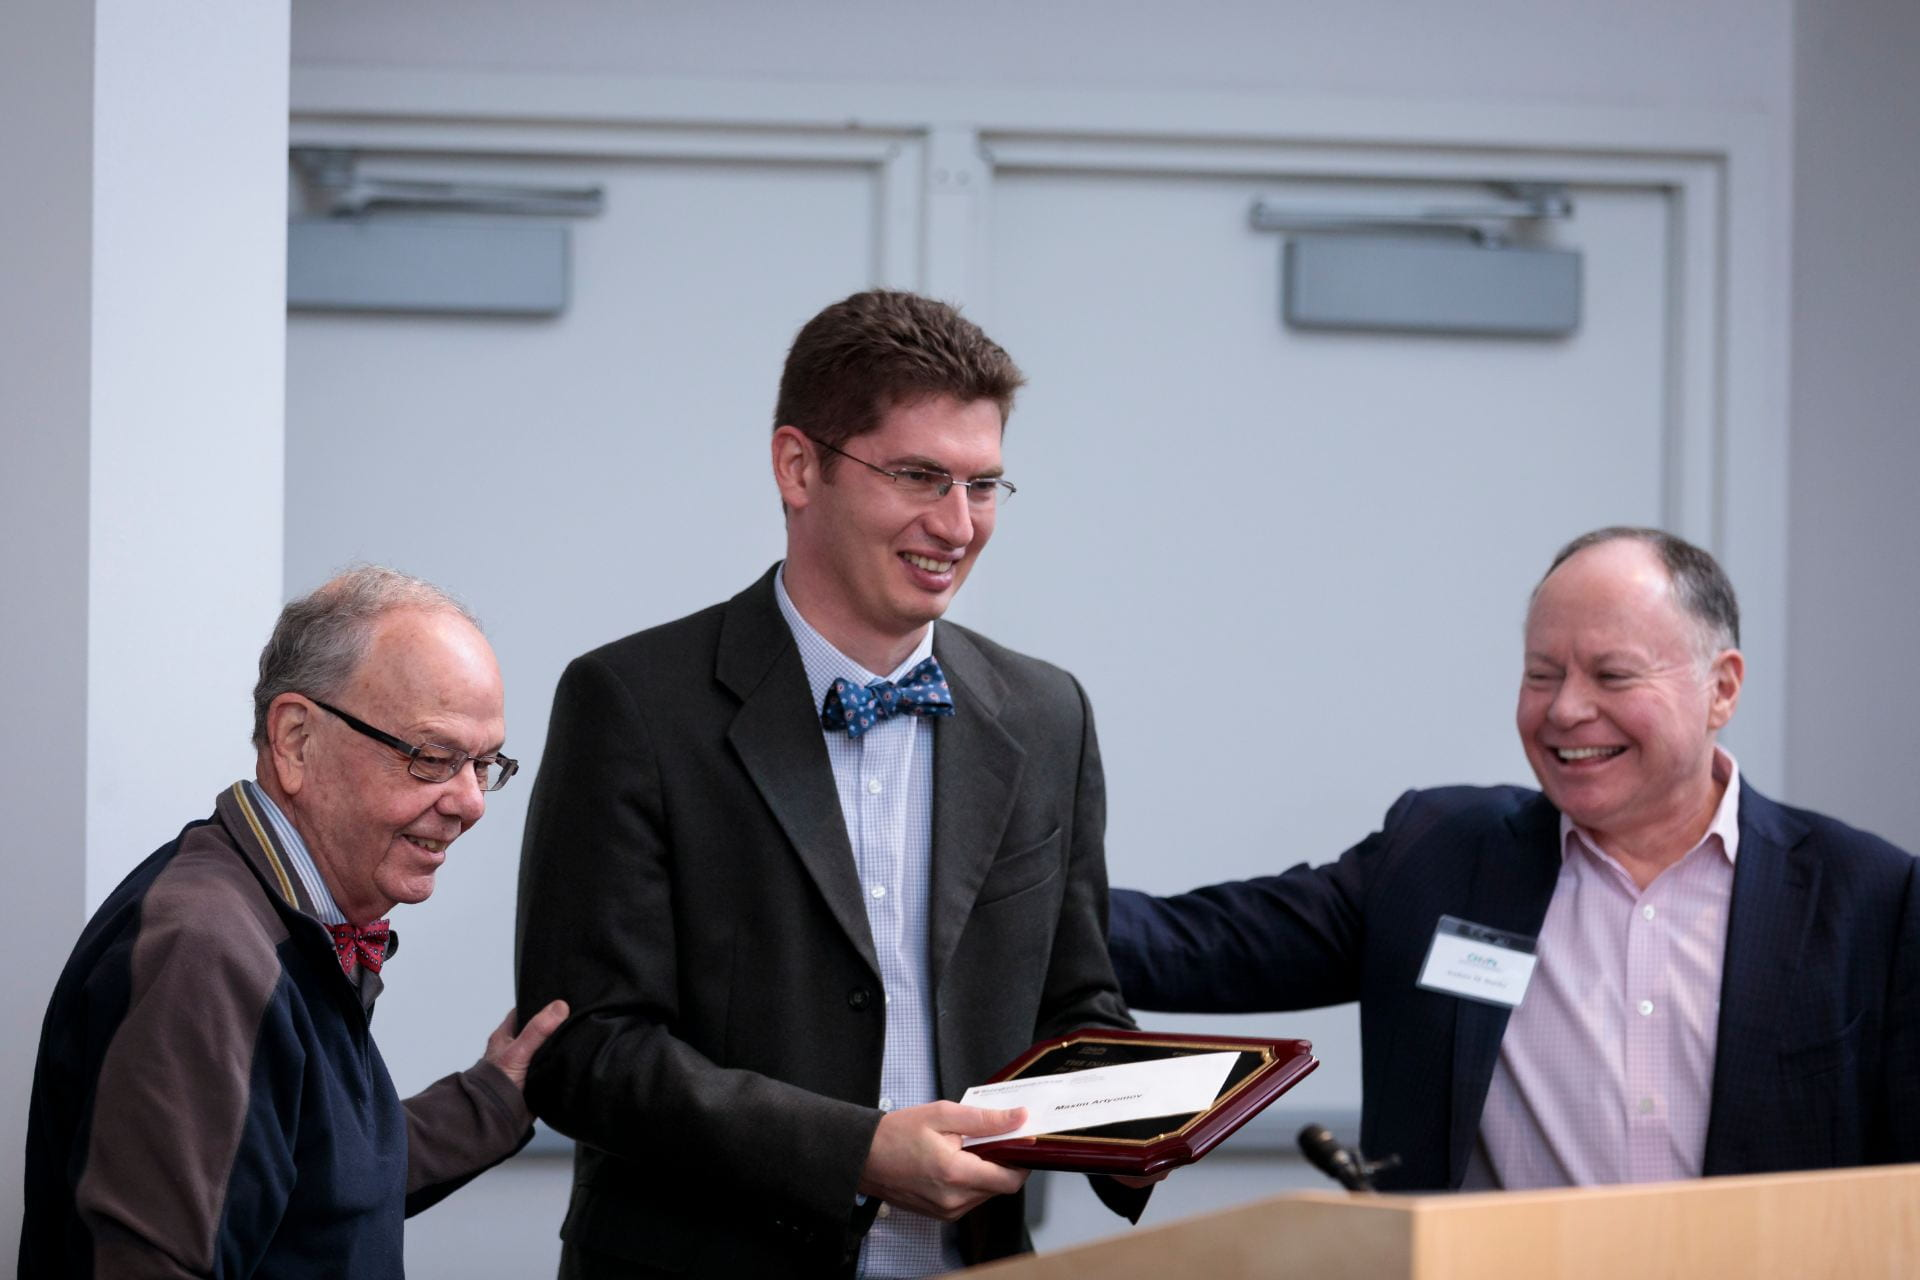 Maxim Artyomov, PhD, center, is awarded the Emil R. Unanue Award by Emil R. Unanue, MD, left, and Andrew Bursky, right